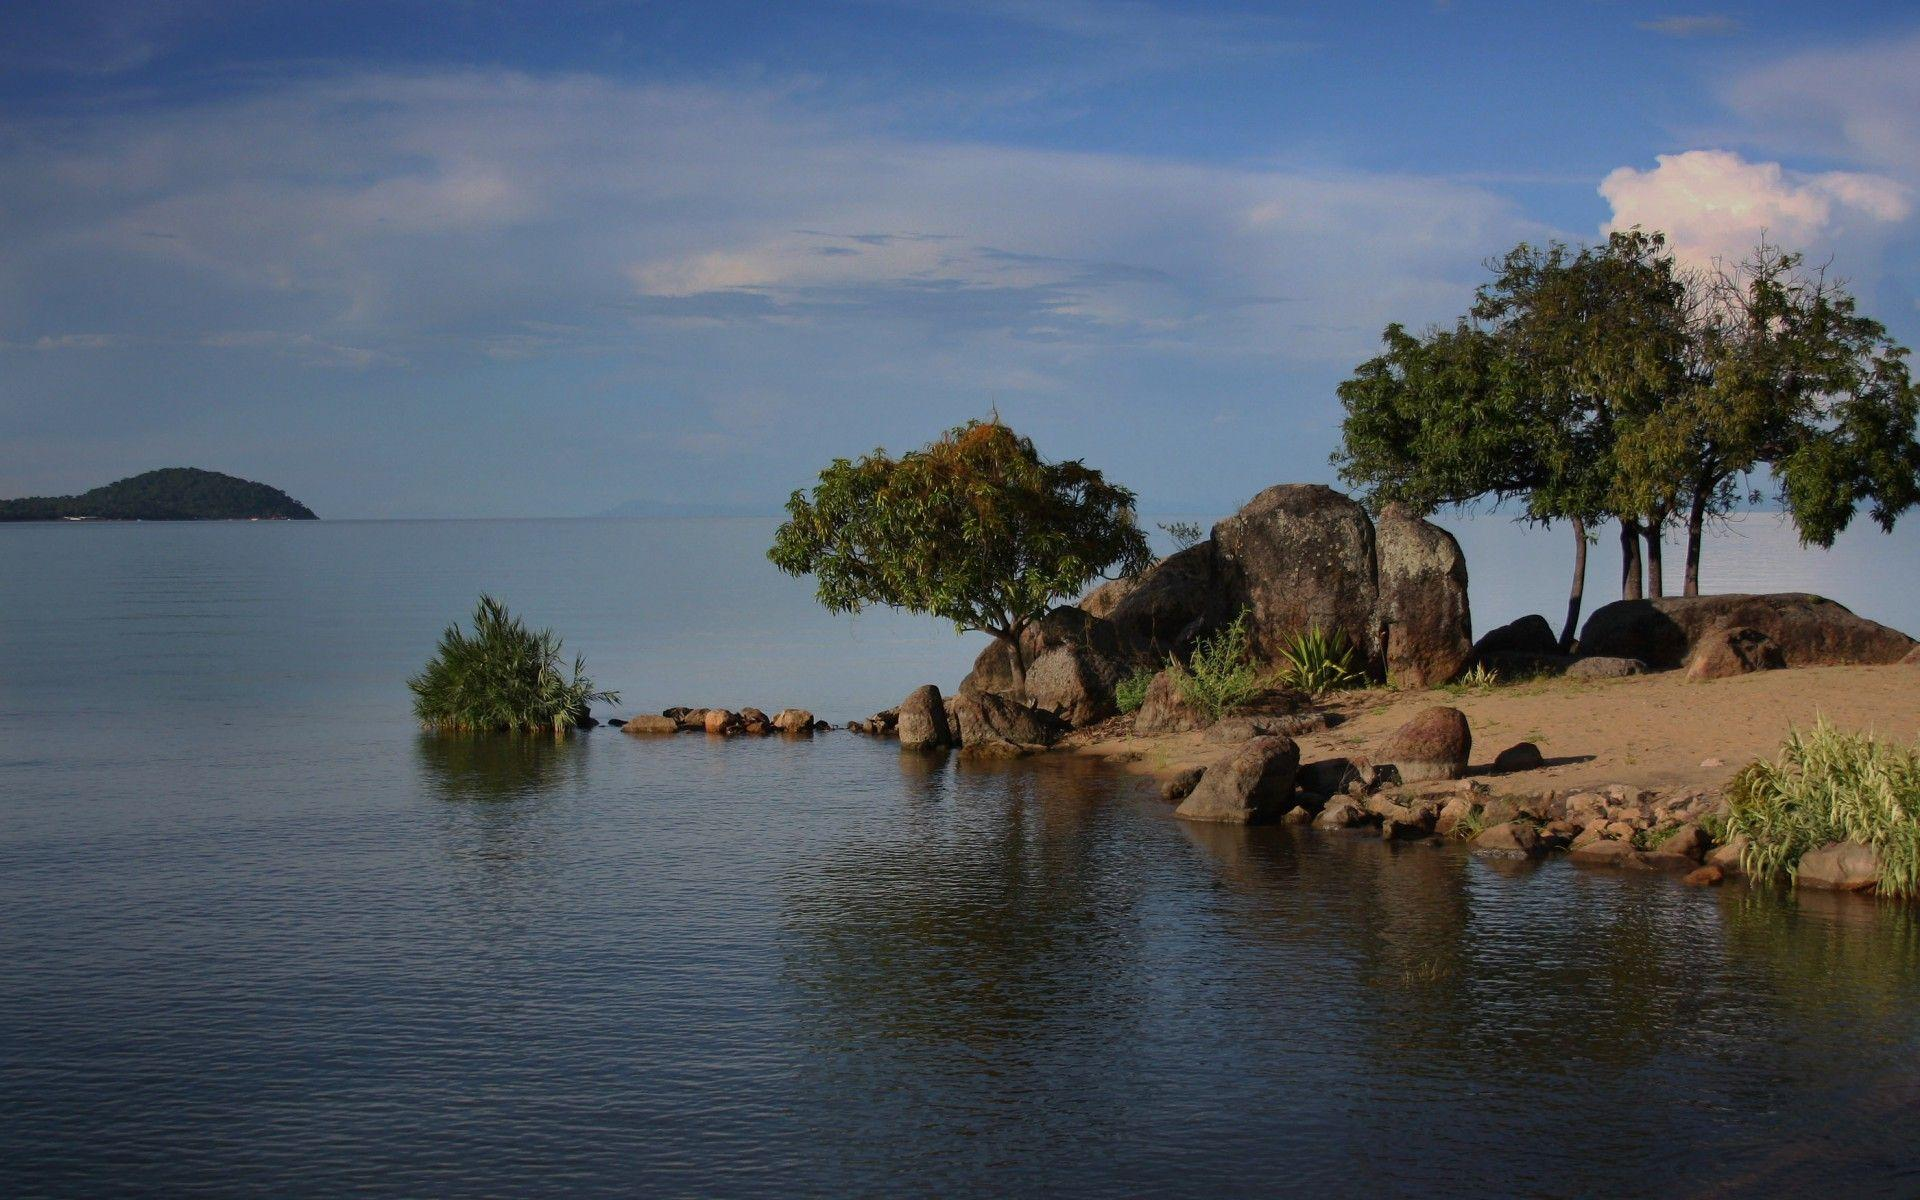 Lake Malawi East Africa wallpapers | Lake Malawi East Africa stock ...